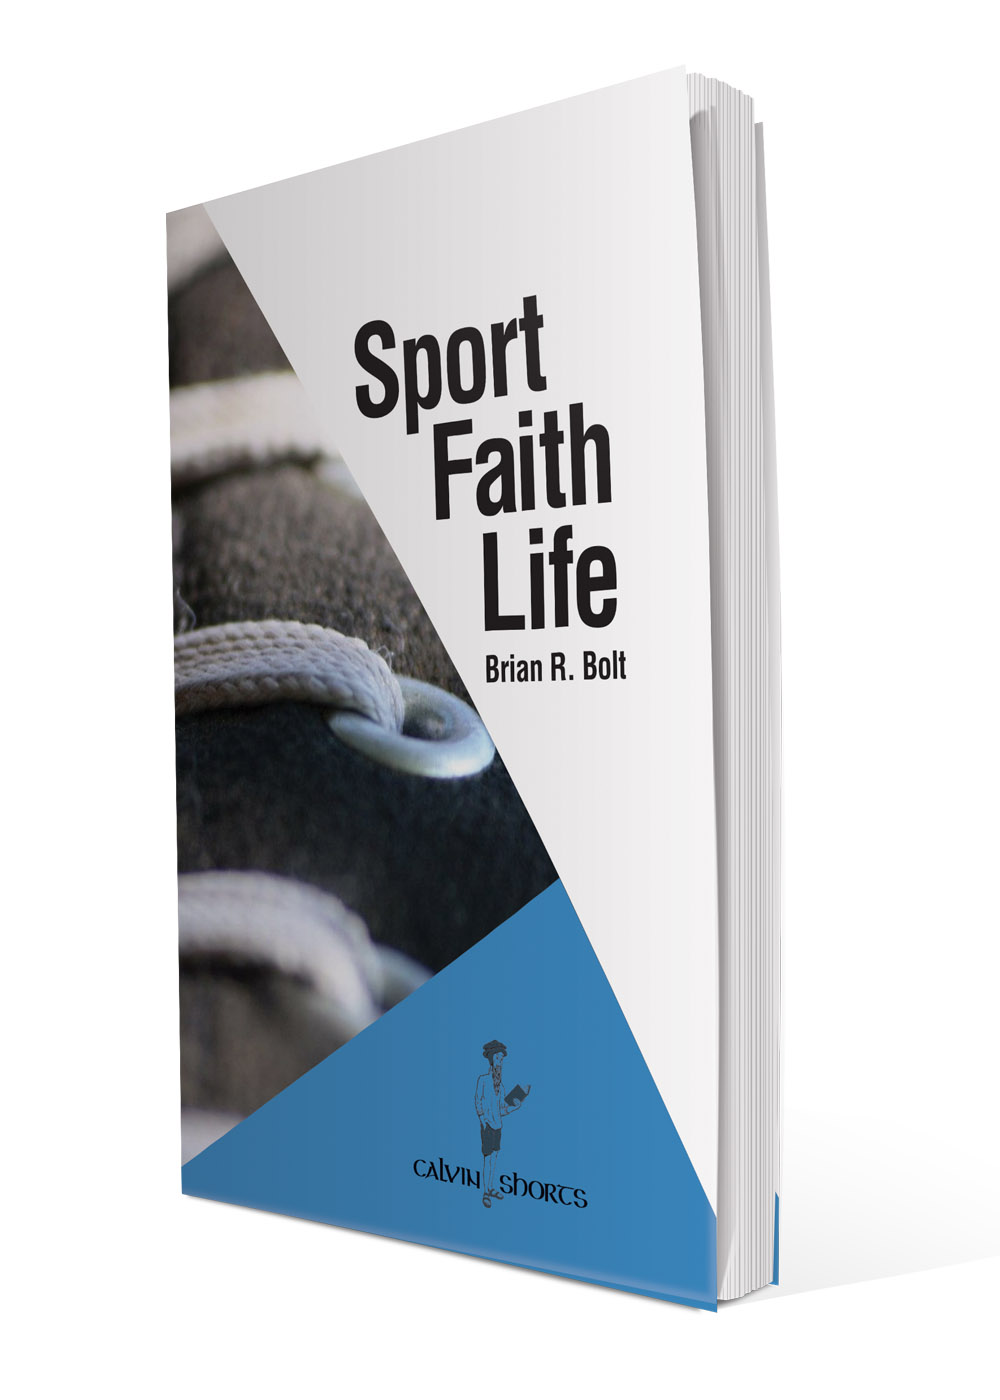 This volume, by Brian R. Bolt, is part of the Calvin Shorts Series, which is available from online retailers or the Calvin College Campus Store.